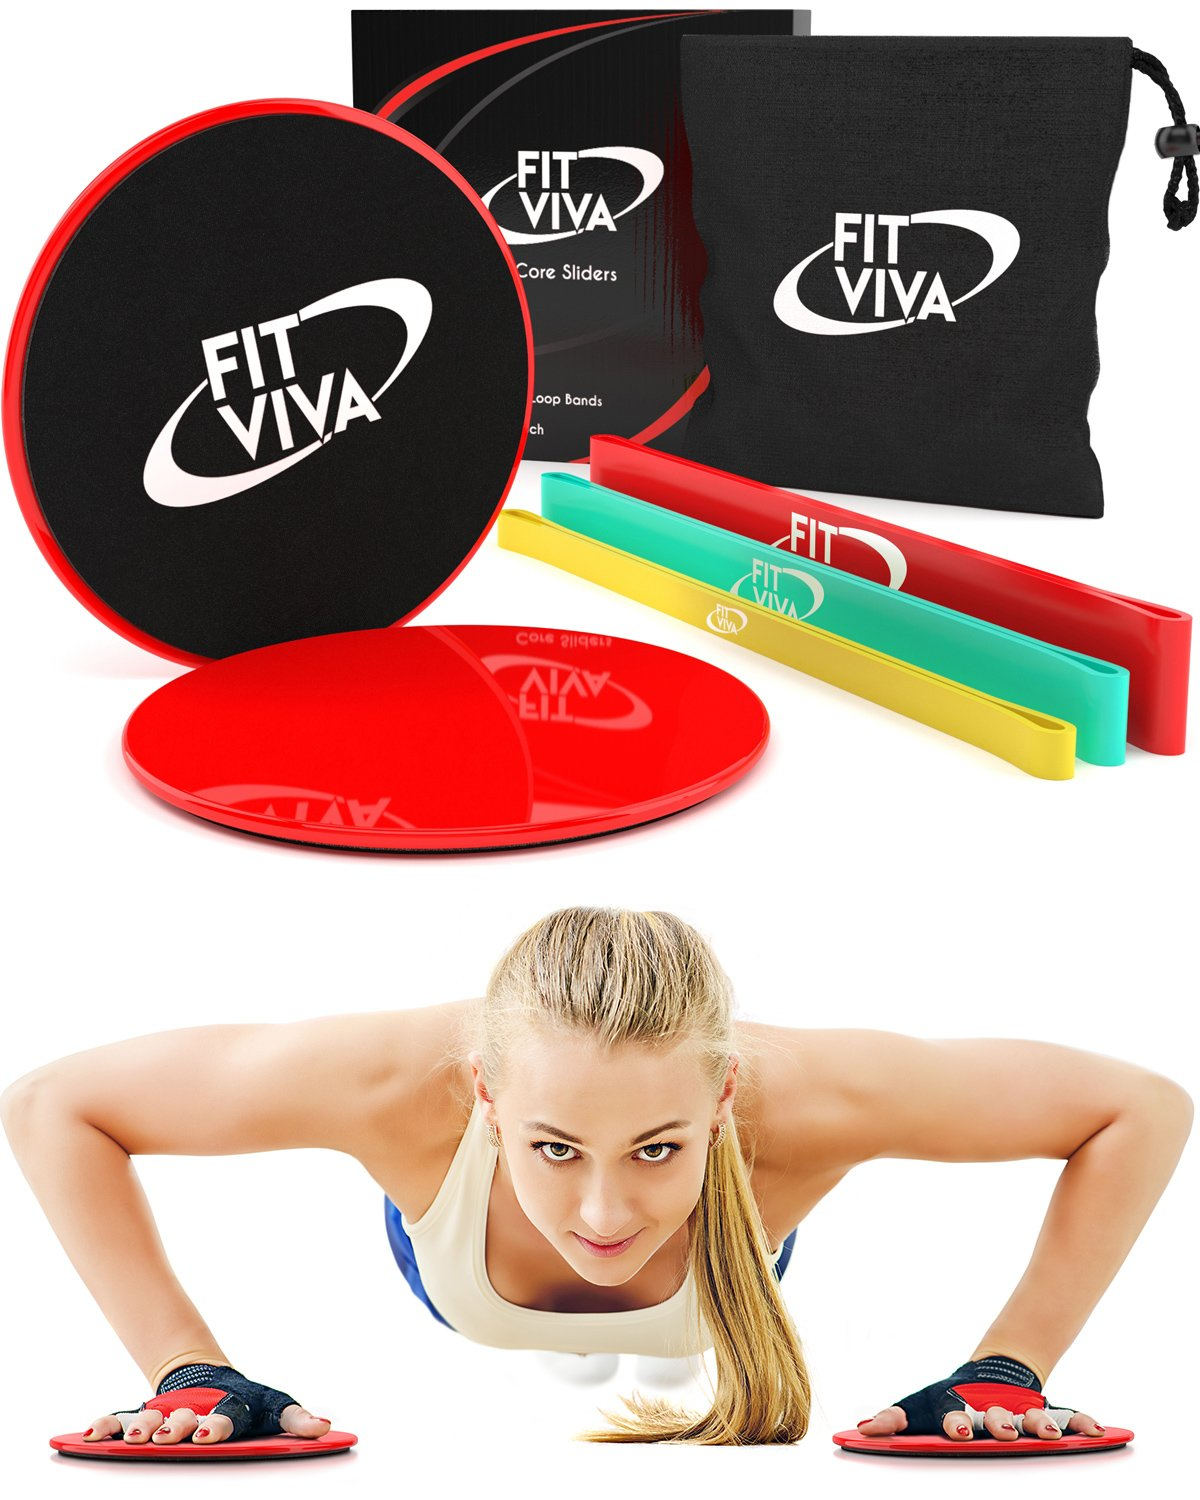 Professional Extra Thick Resistance Loop Bands and Workout Sliders Fitness Bundle with Exercise eBook - Lightweight Workout Equipment for Home